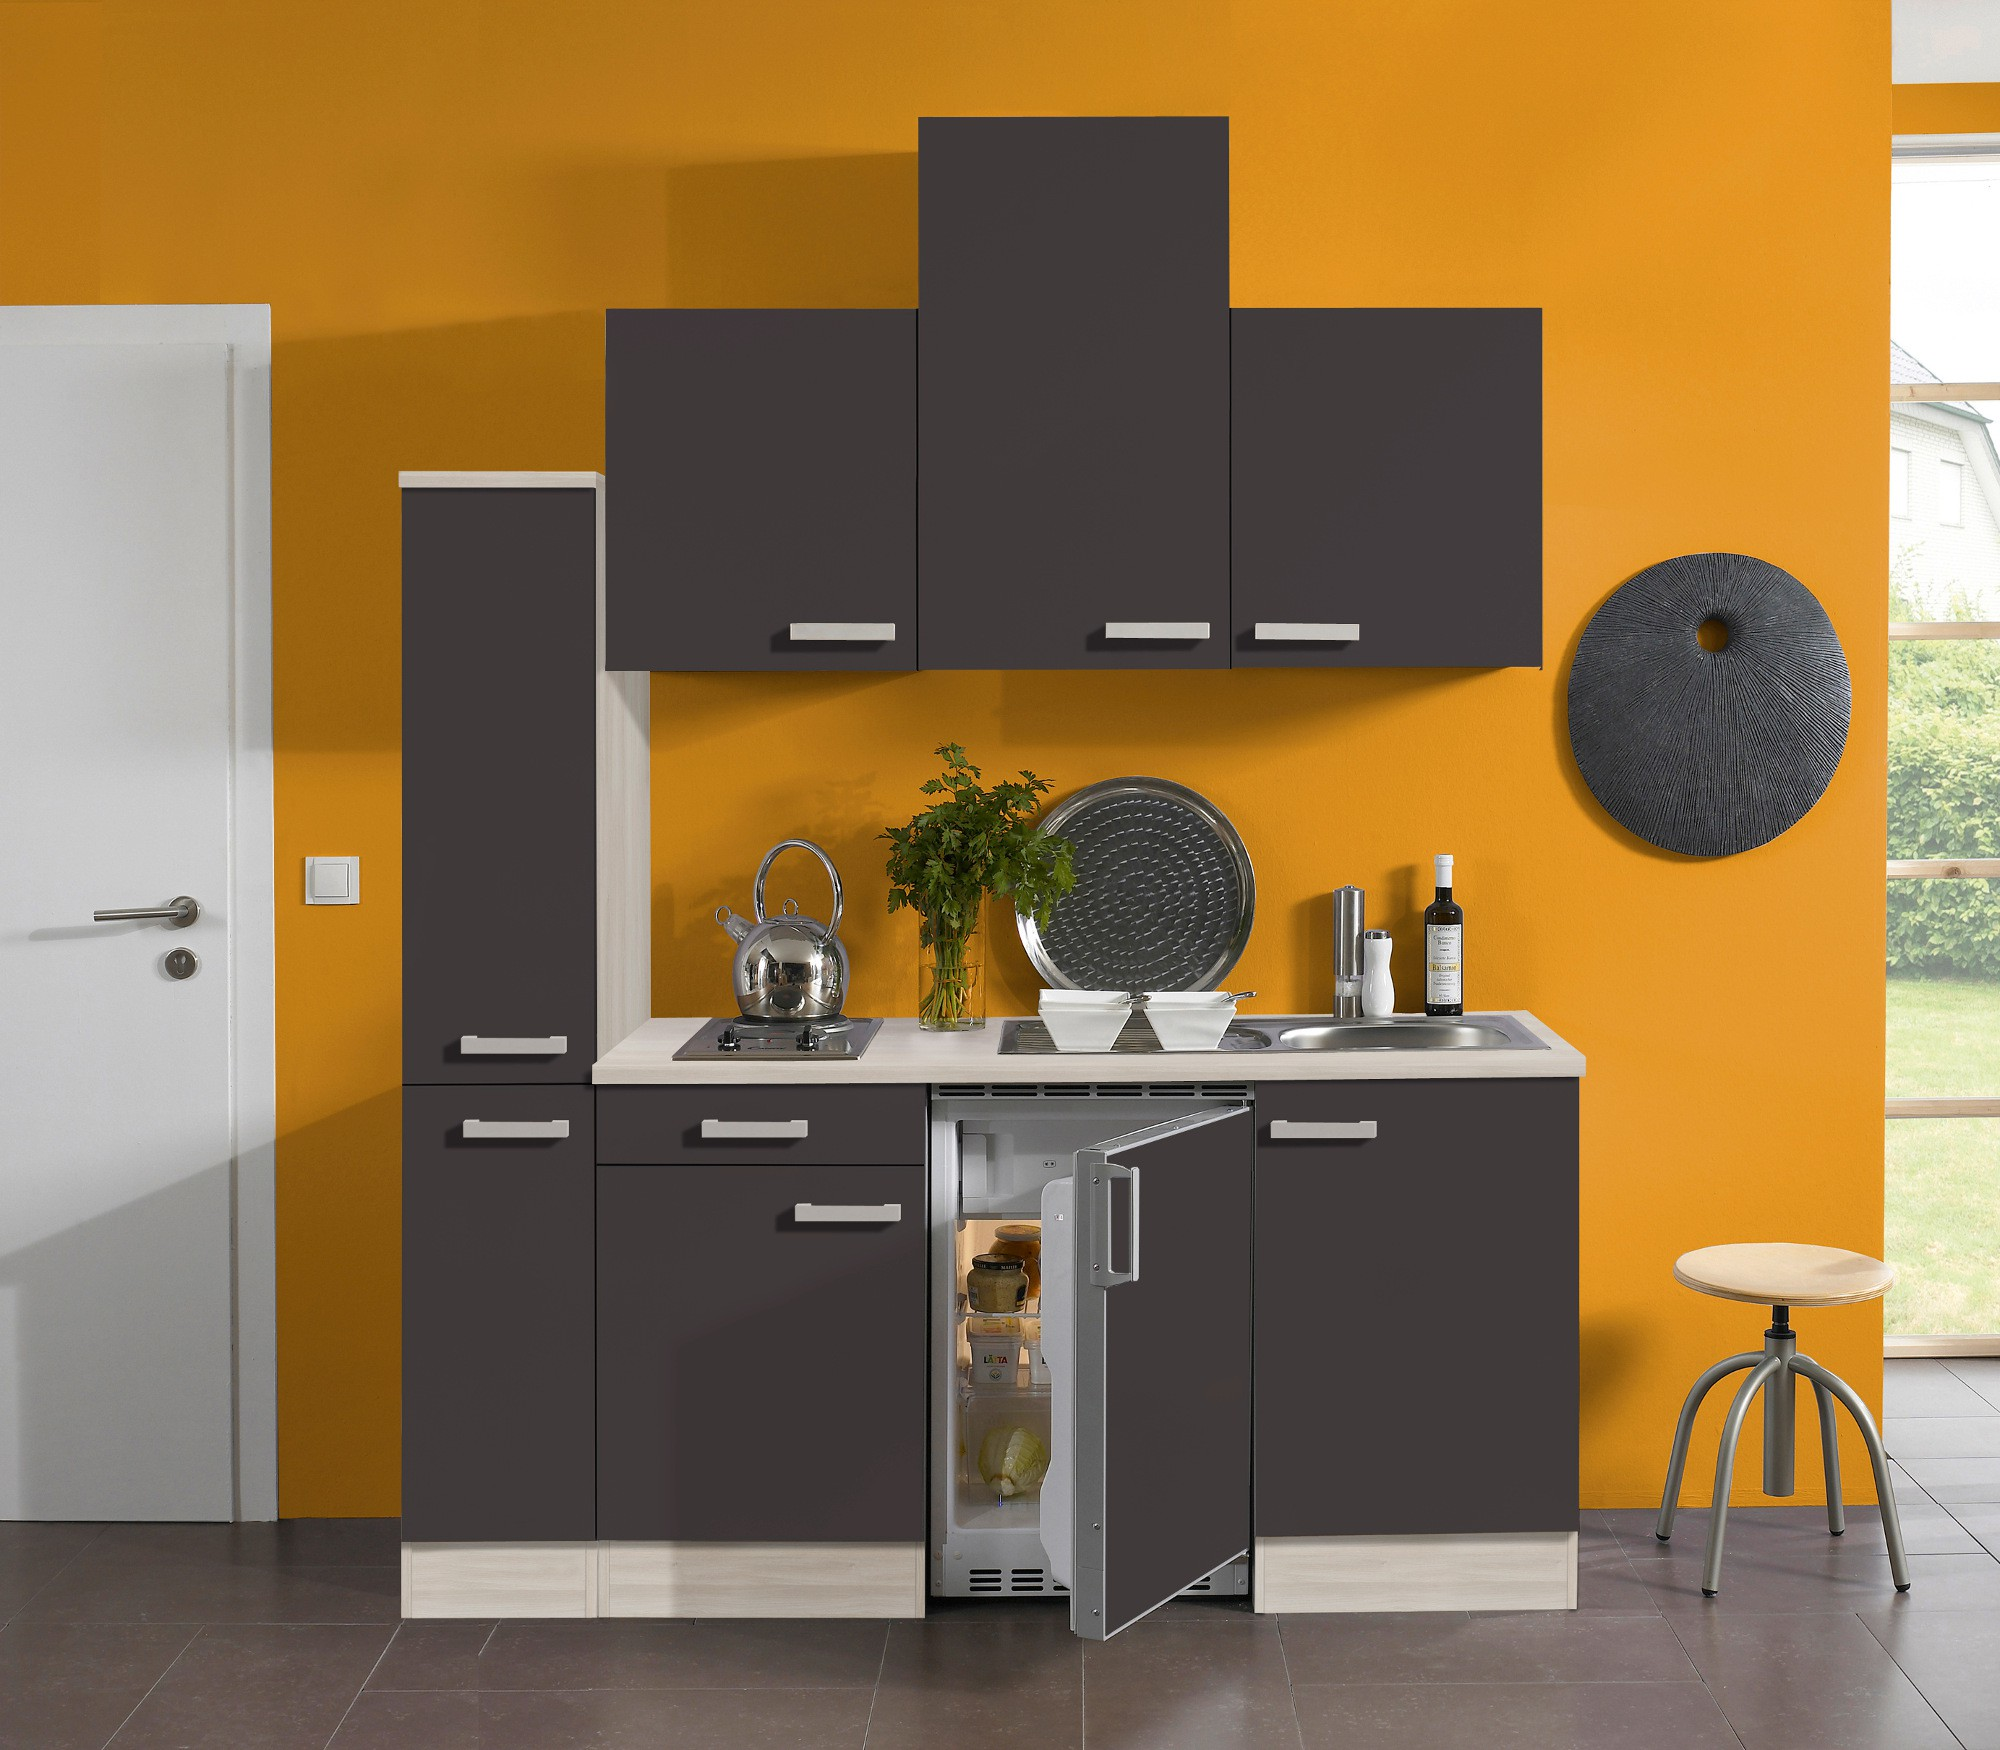 singlek che barcelona vario 2 mit elektro kochfeld breite 180 cm grau k che. Black Bedroom Furniture Sets. Home Design Ideas